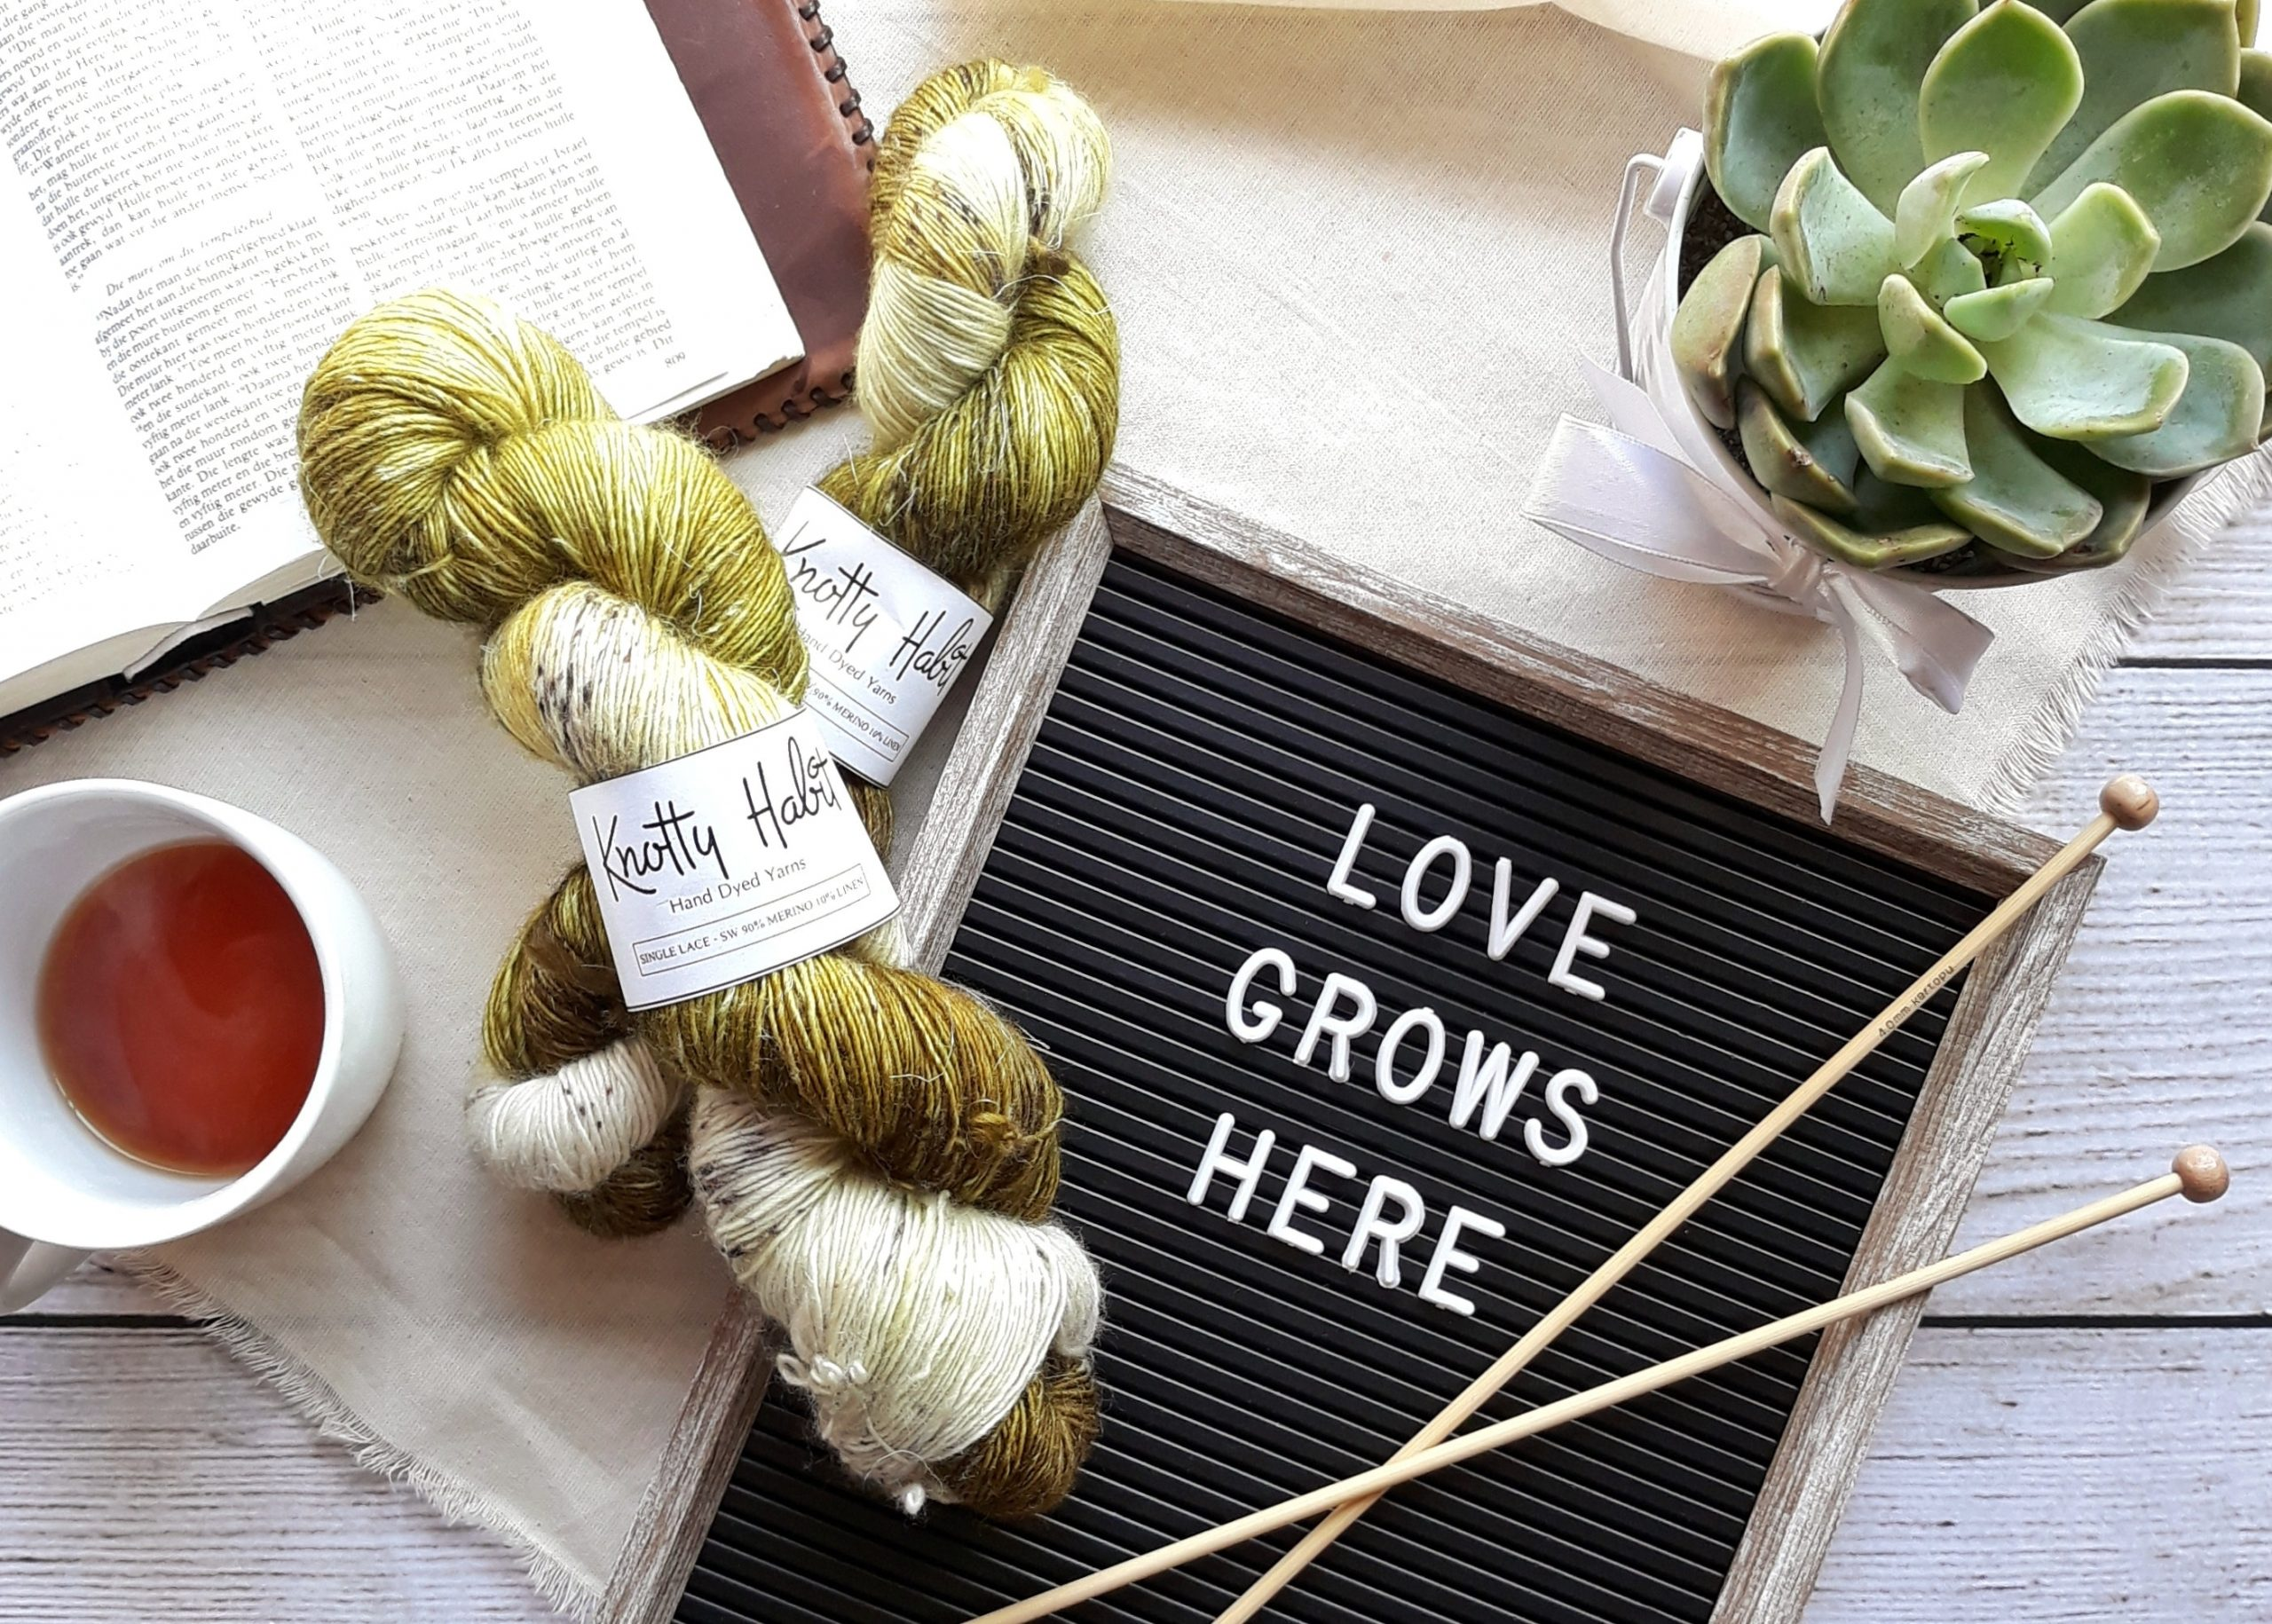 How to make yarn stiff for crafts?